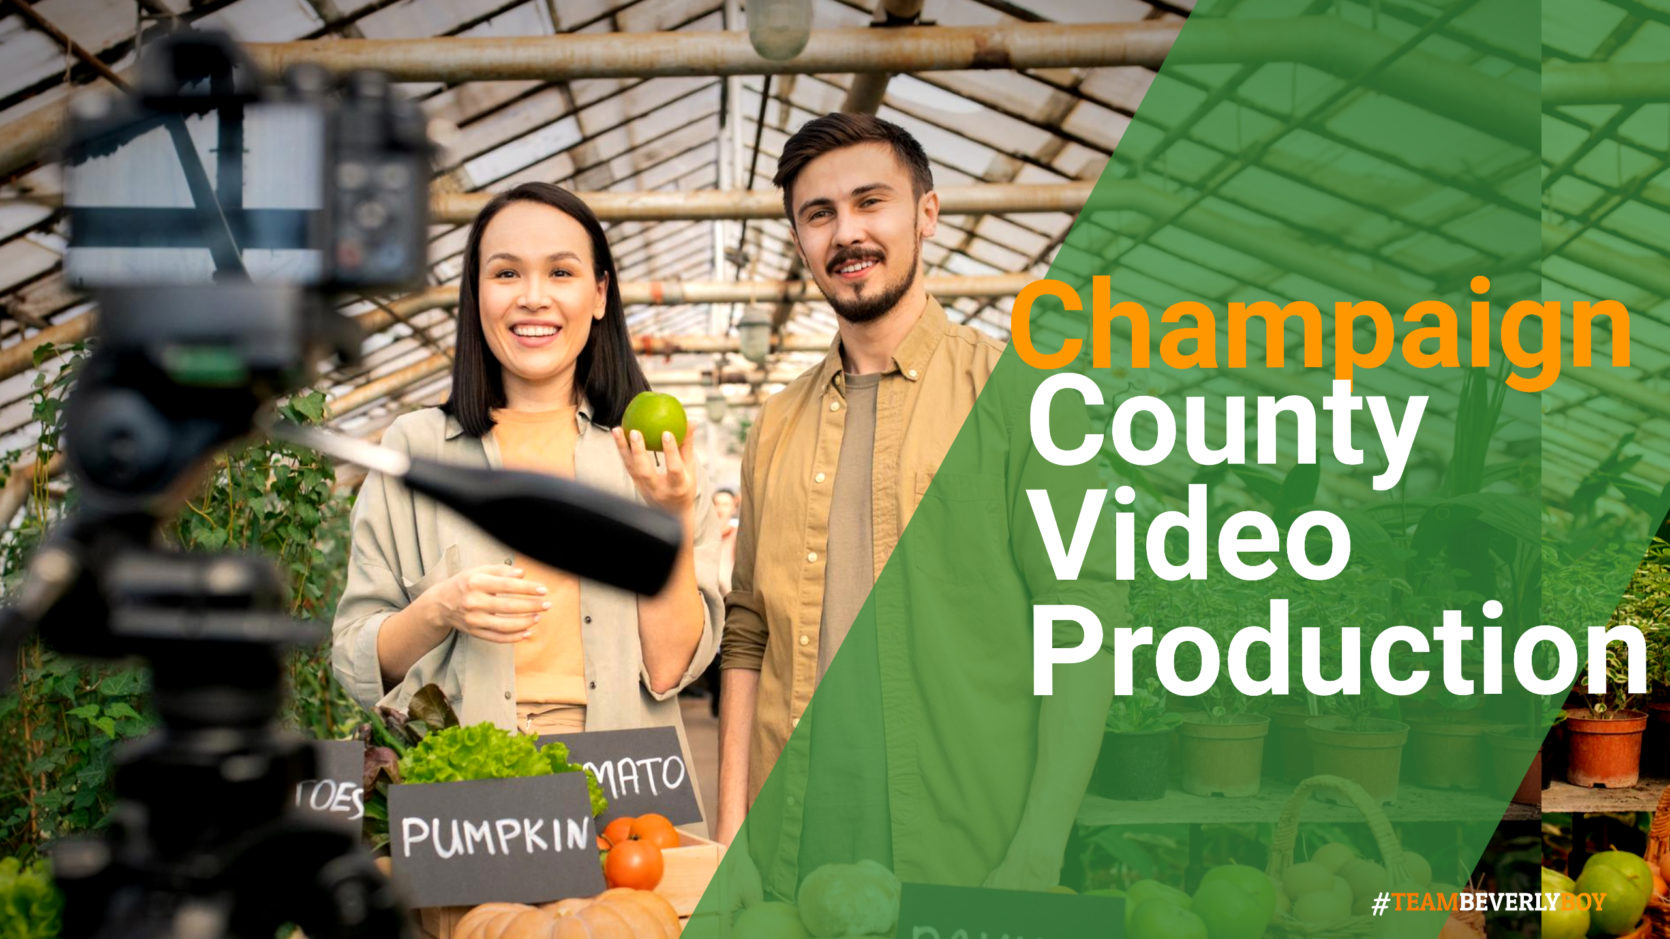 Champaign County video production